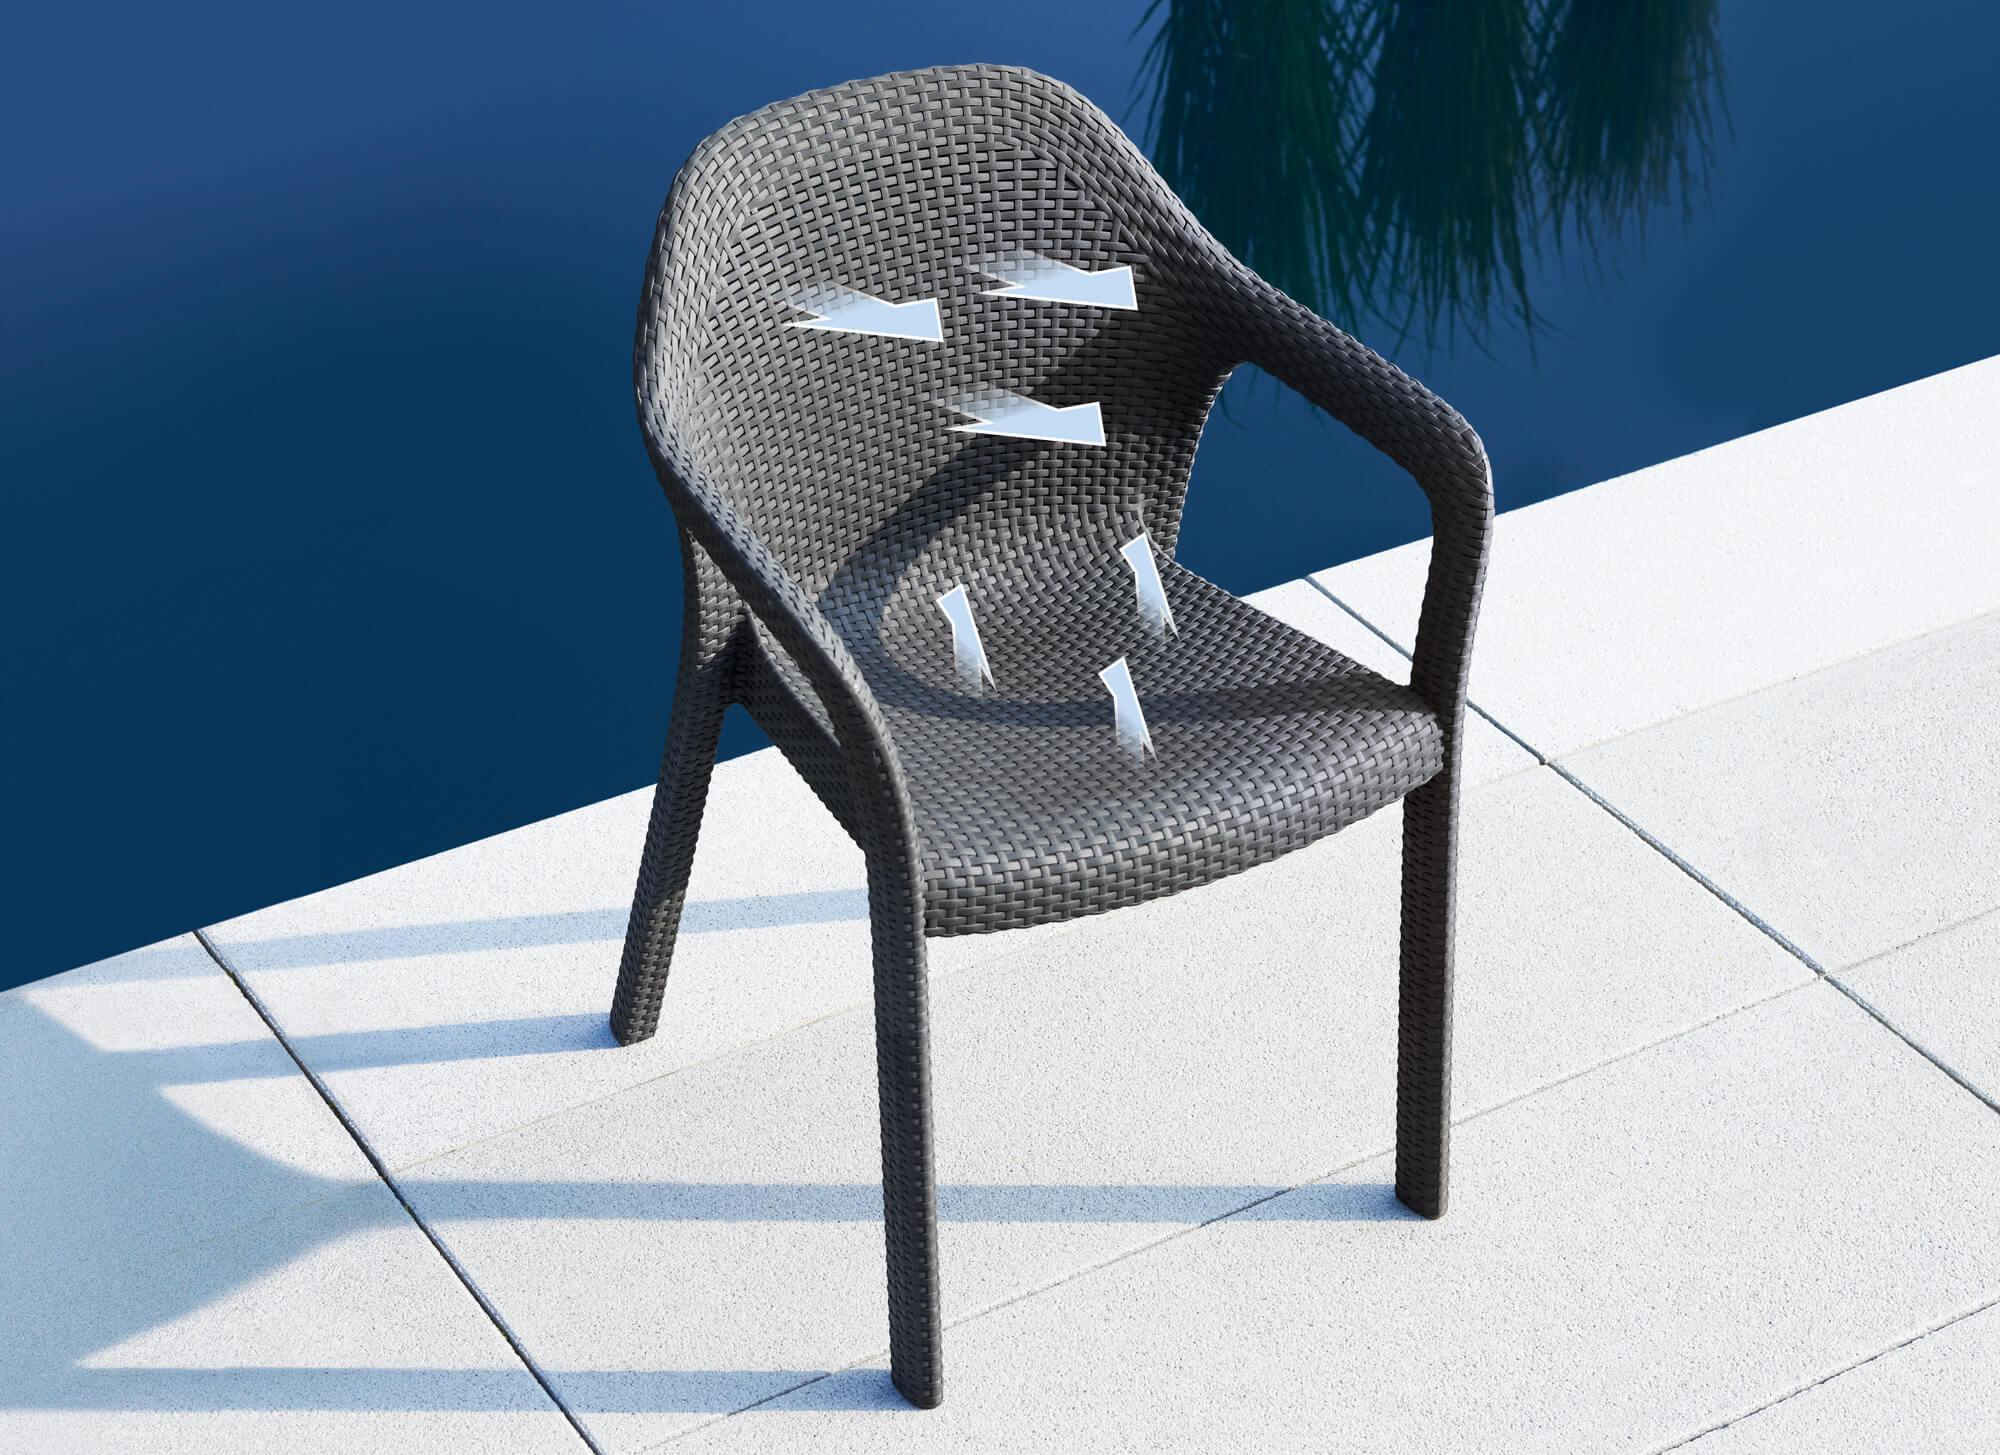 The LECHUZA chair offers maximum comfort